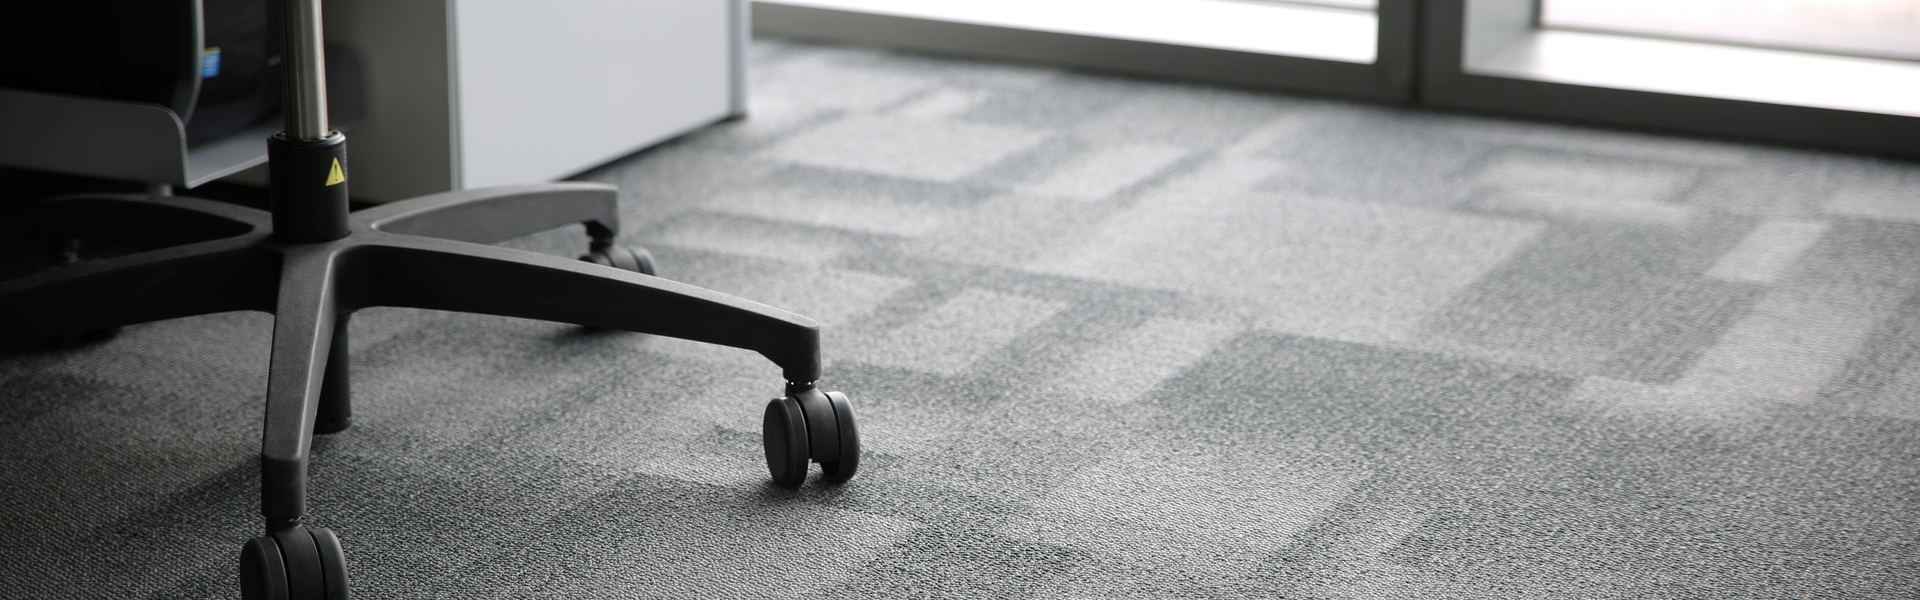 Why You Should Hire Professional Carpet Cleaners for Your Commercial Space